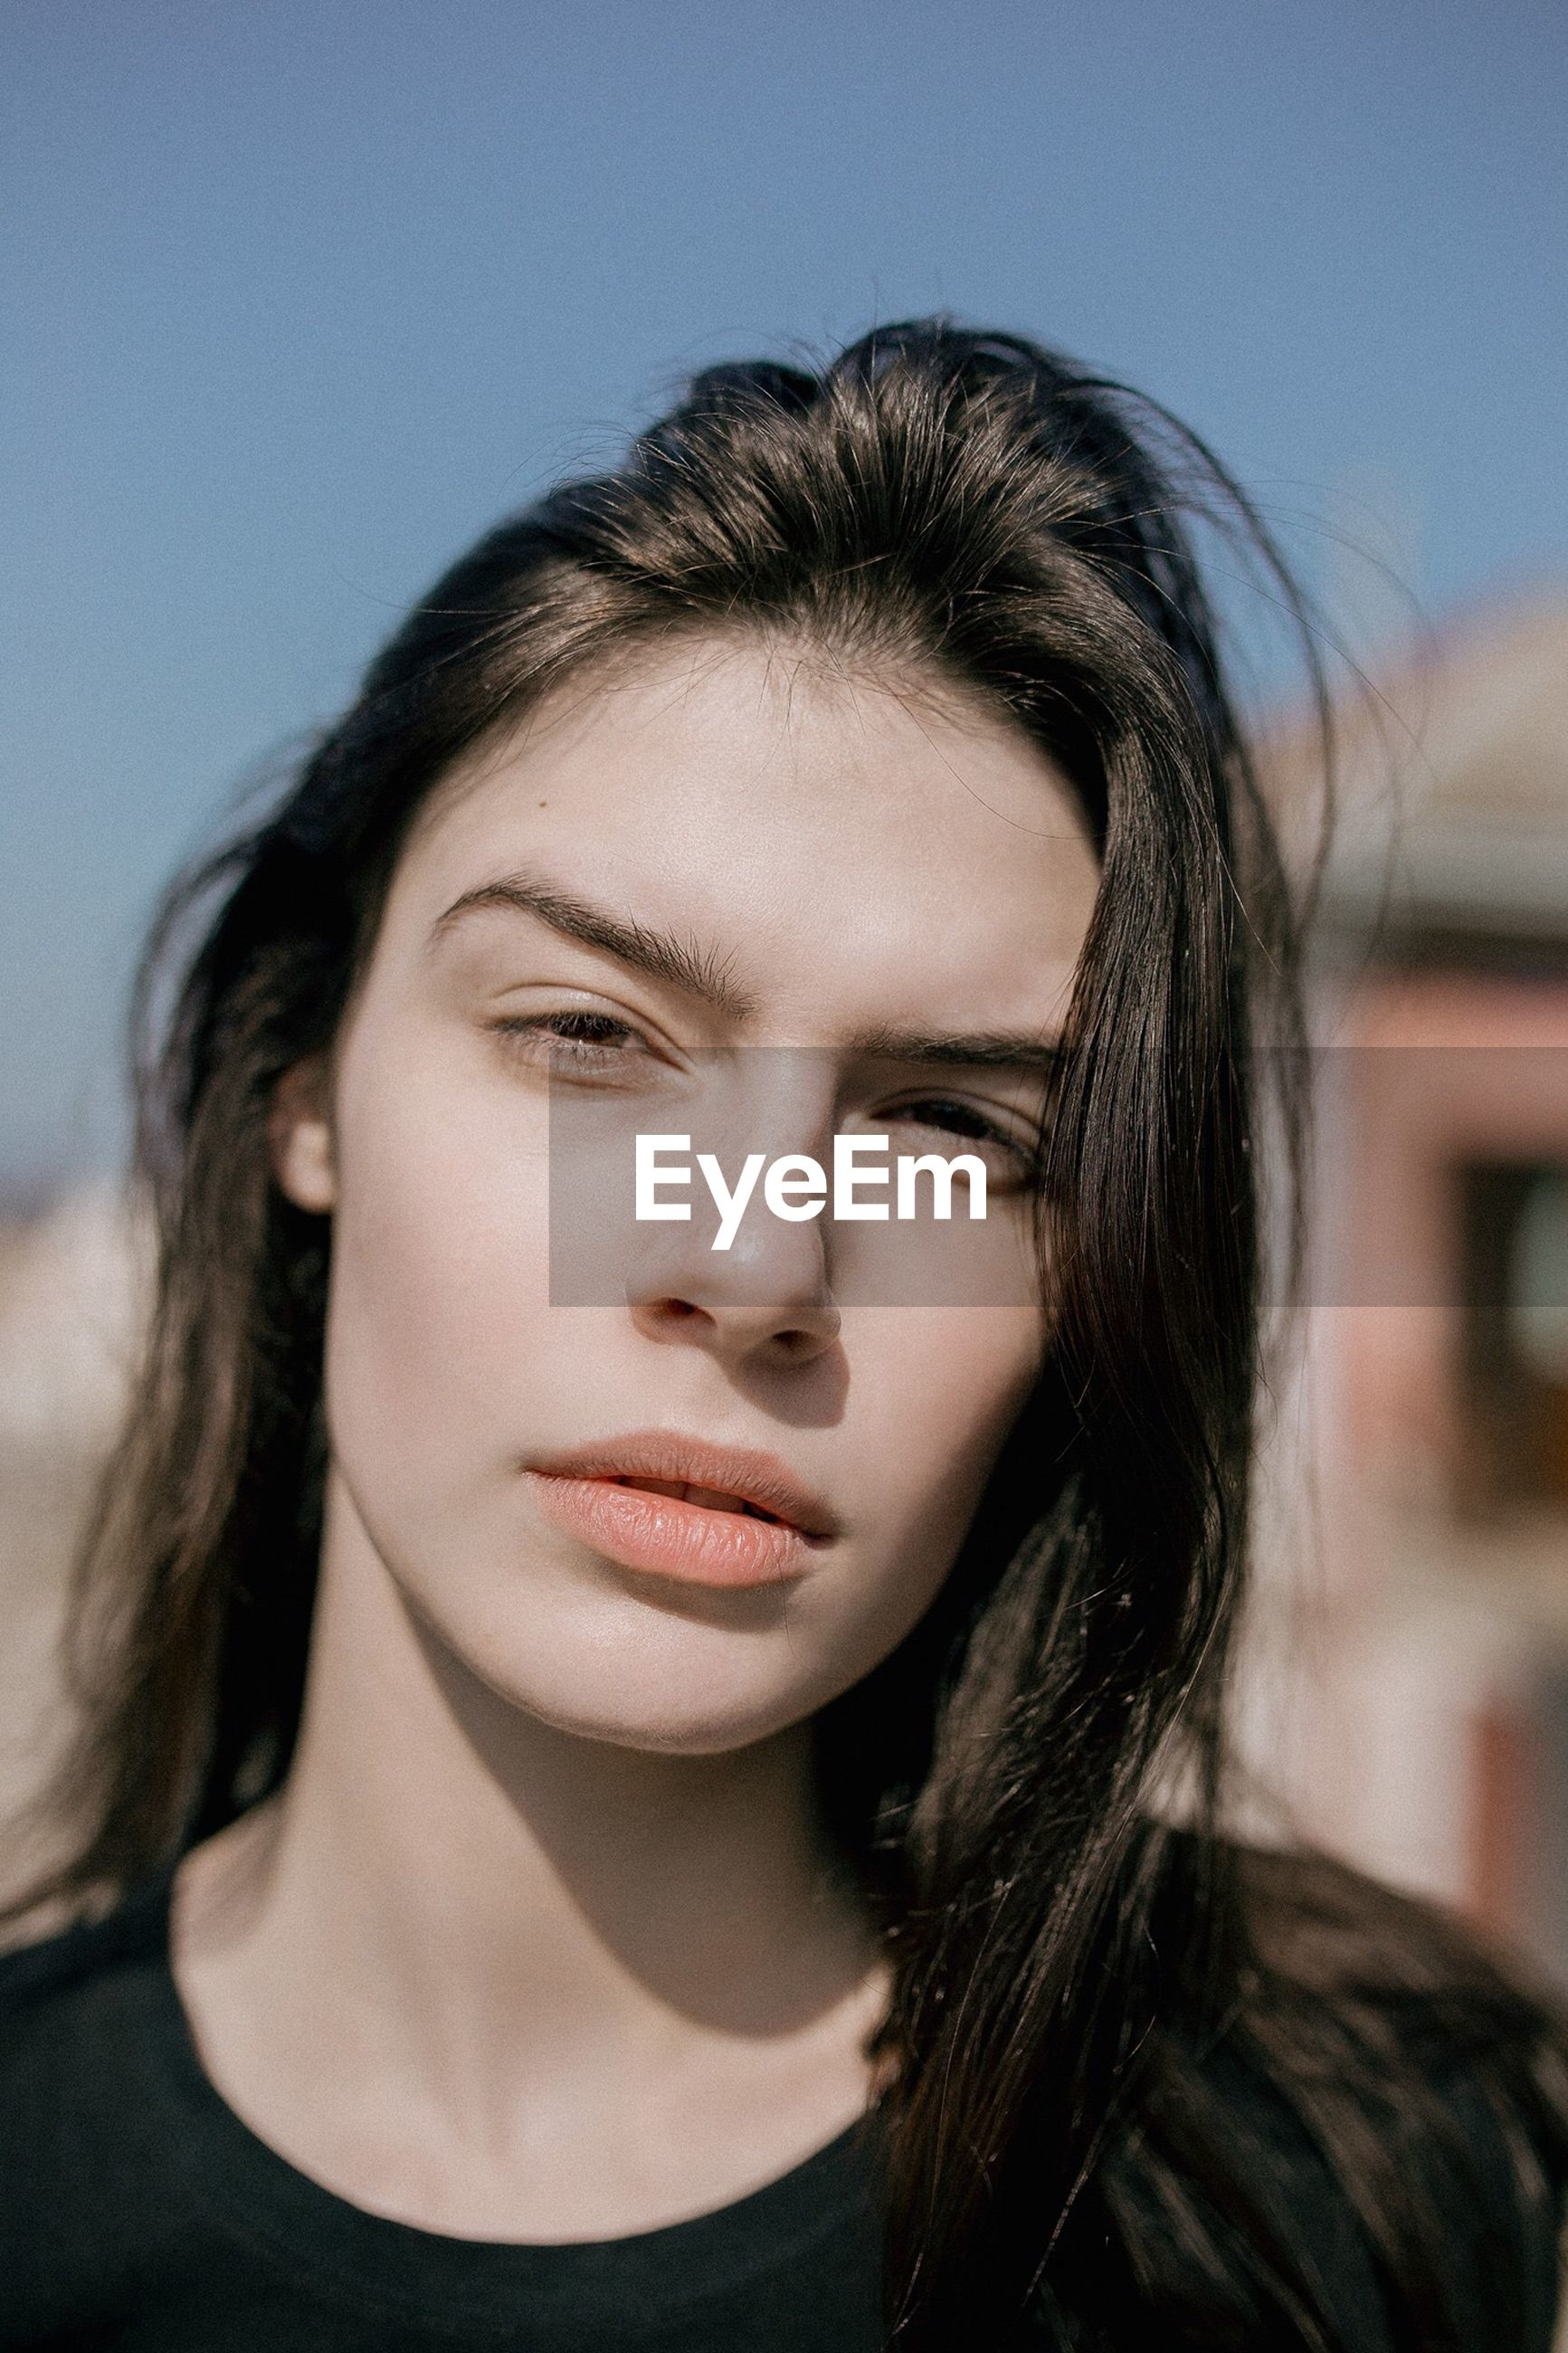 headshot, portrait, one person, front view, hair, hairstyle, lifestyles, young adult, leisure activity, focus on foreground, beauty, close-up, long hair, real people, beautiful woman, young women, looking at camera, casual clothing, contemplation, human face, teenager